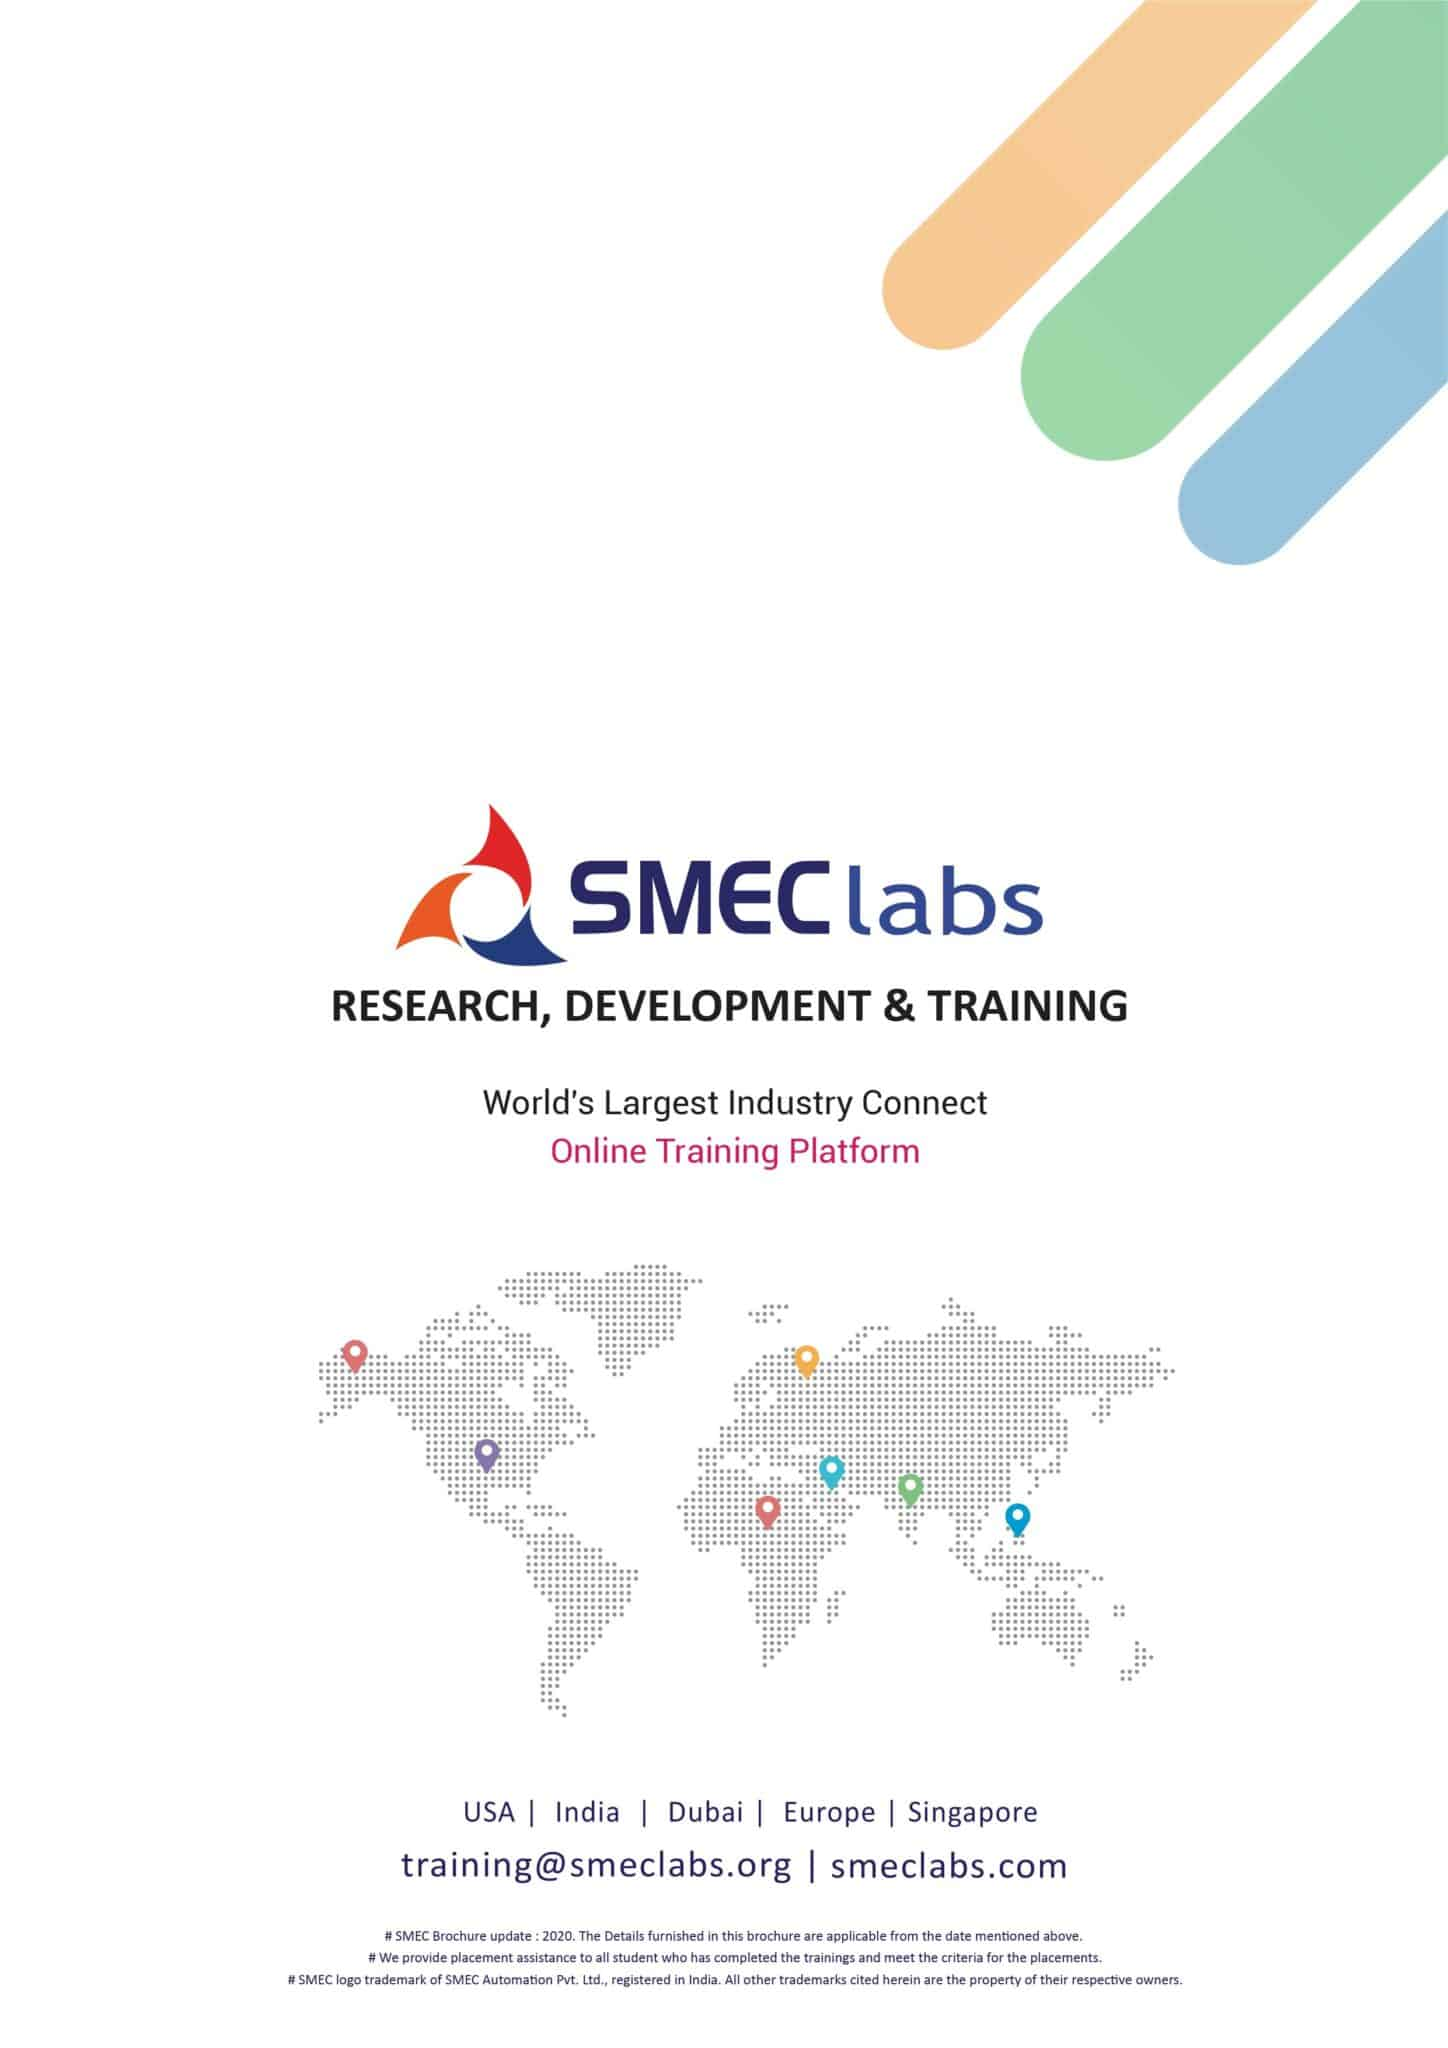 SMEClabs research development and training institute